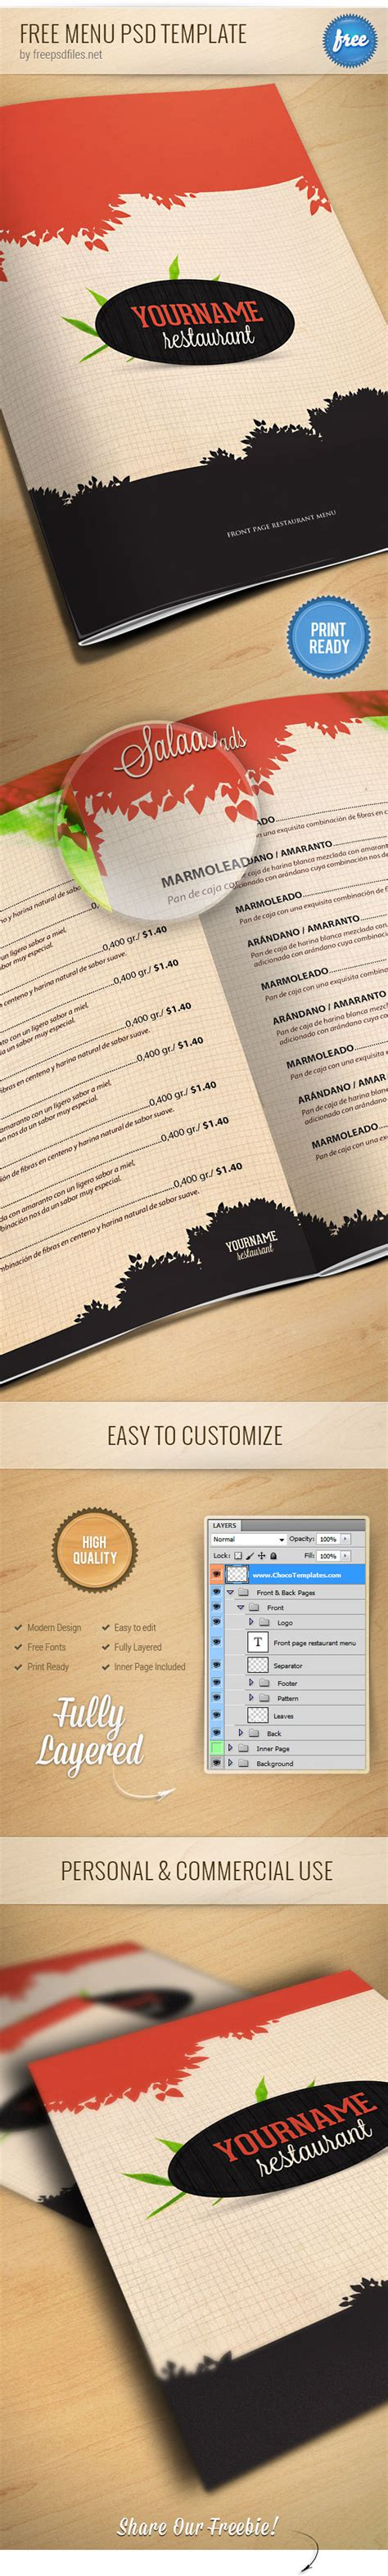 restaurant menu psd template free psd files graphic